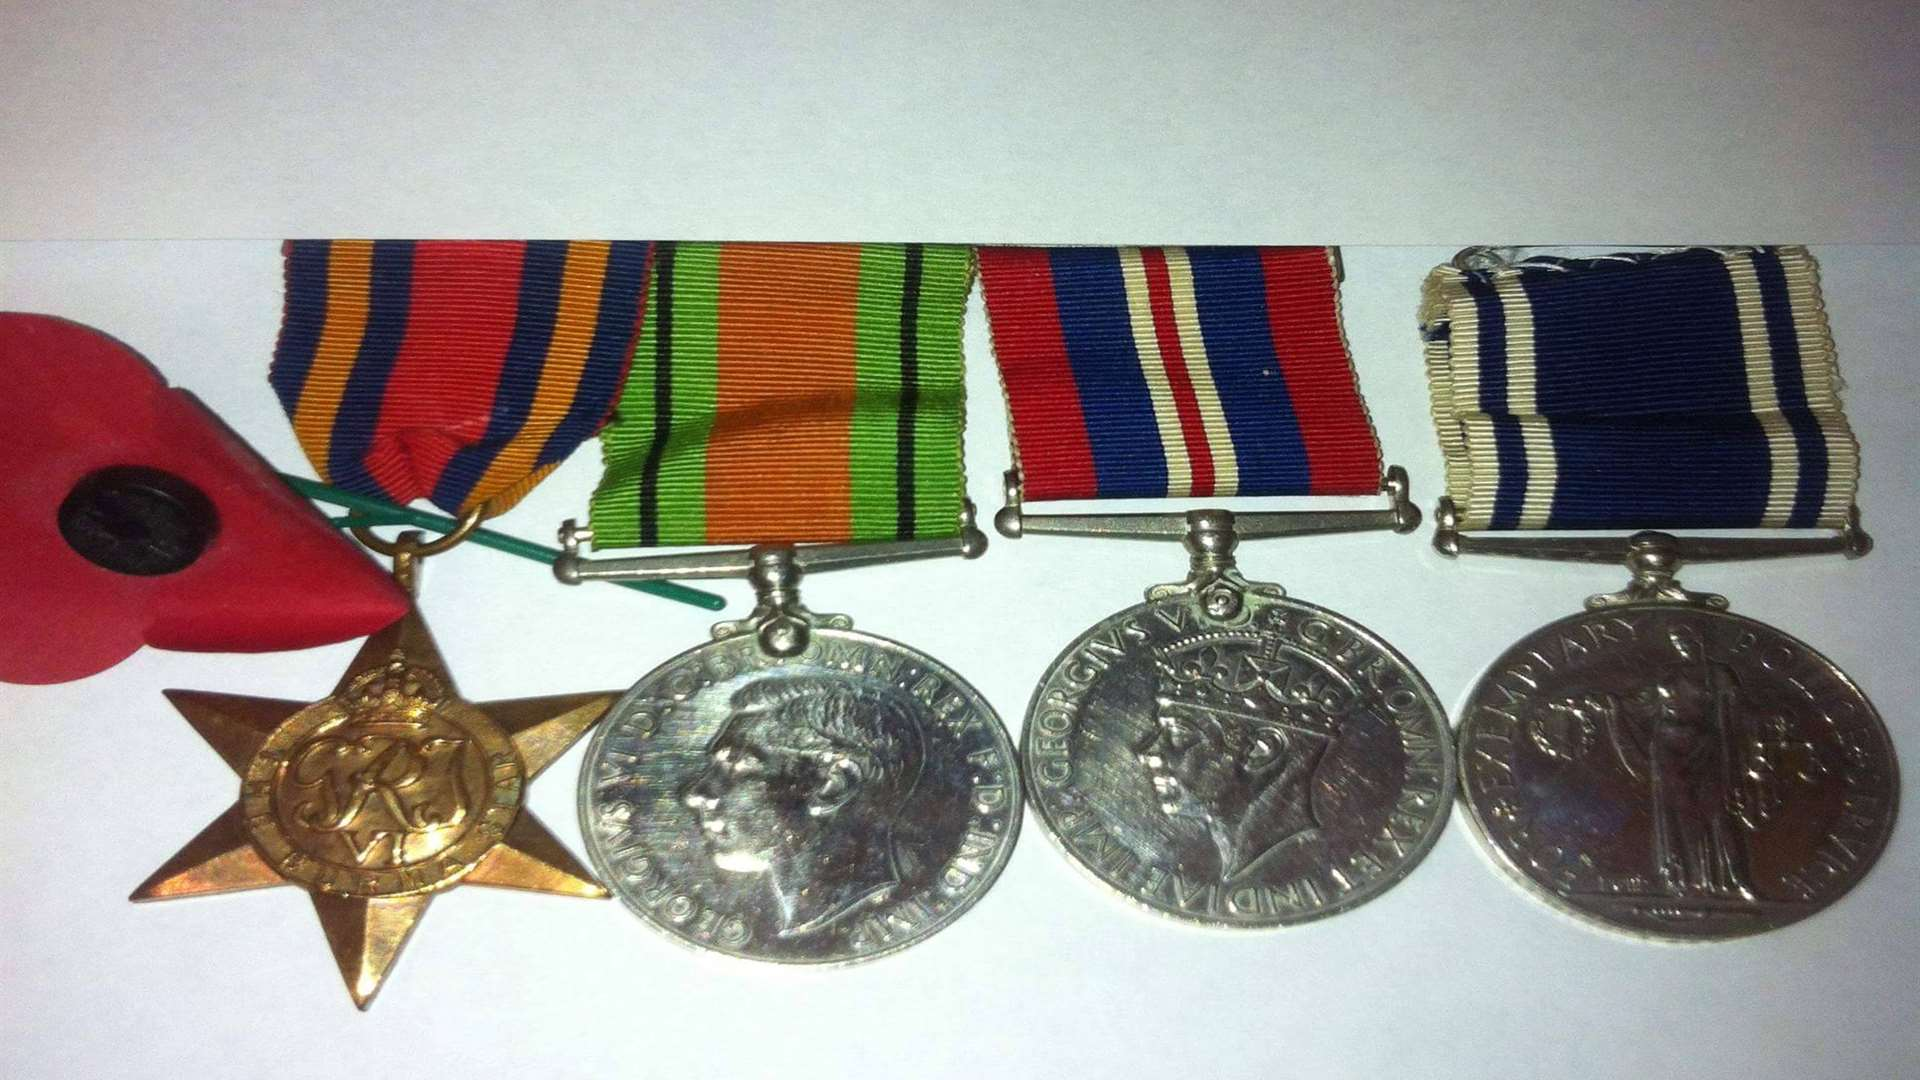 Four medals belonging to Phil's late father Charles Chislet